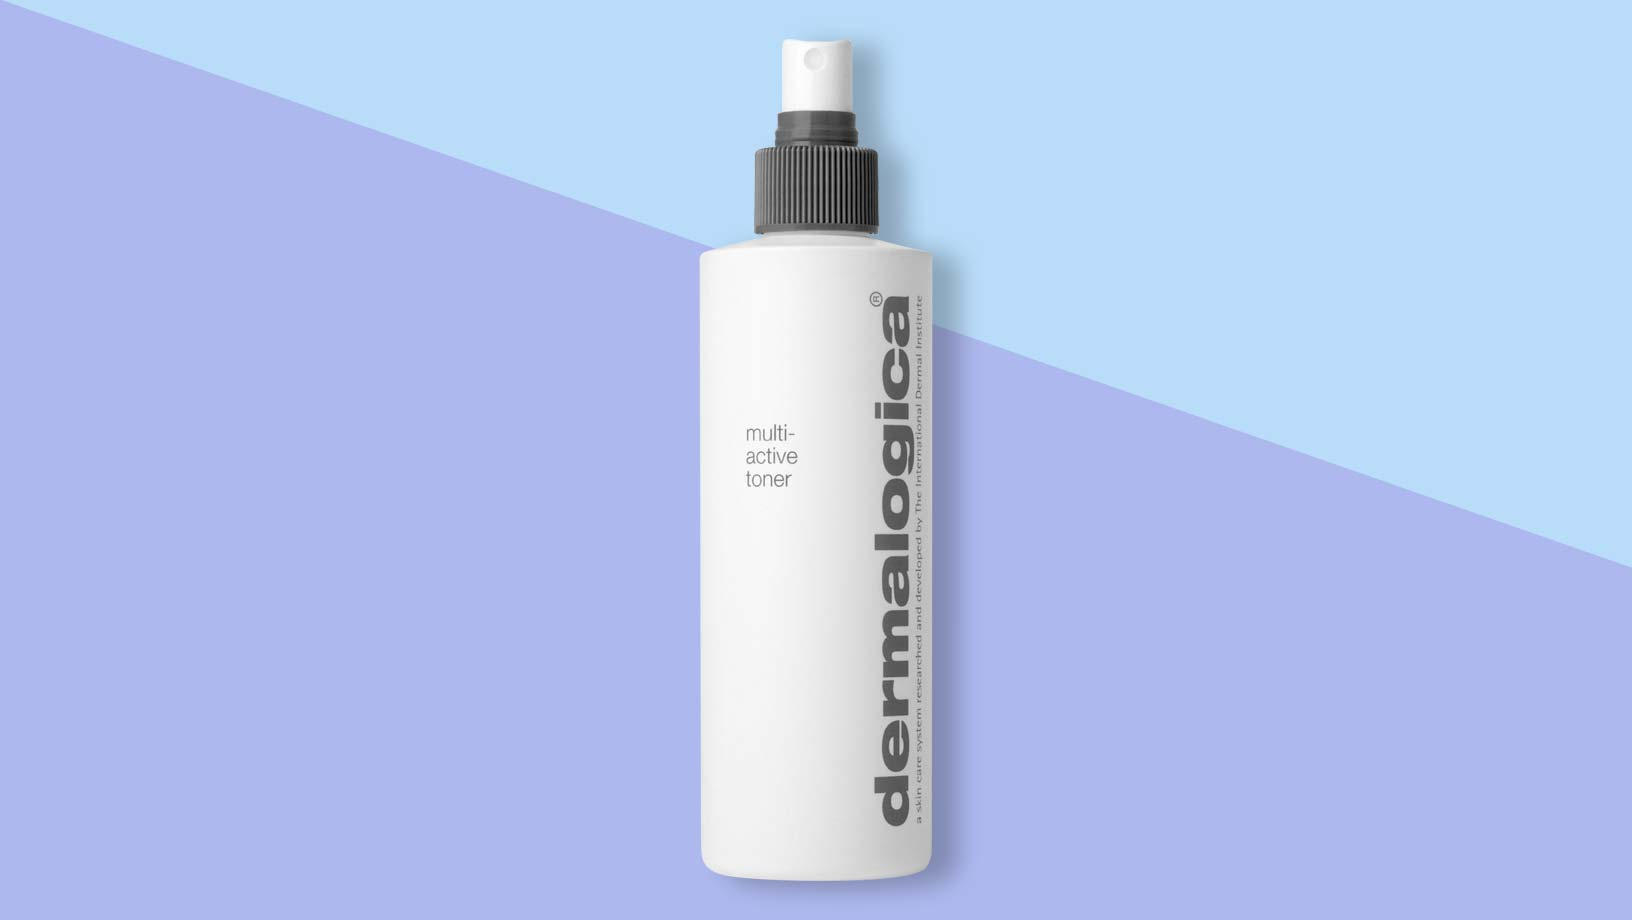 Dermalogica Multi-Active Toner staning on a blue and purple background